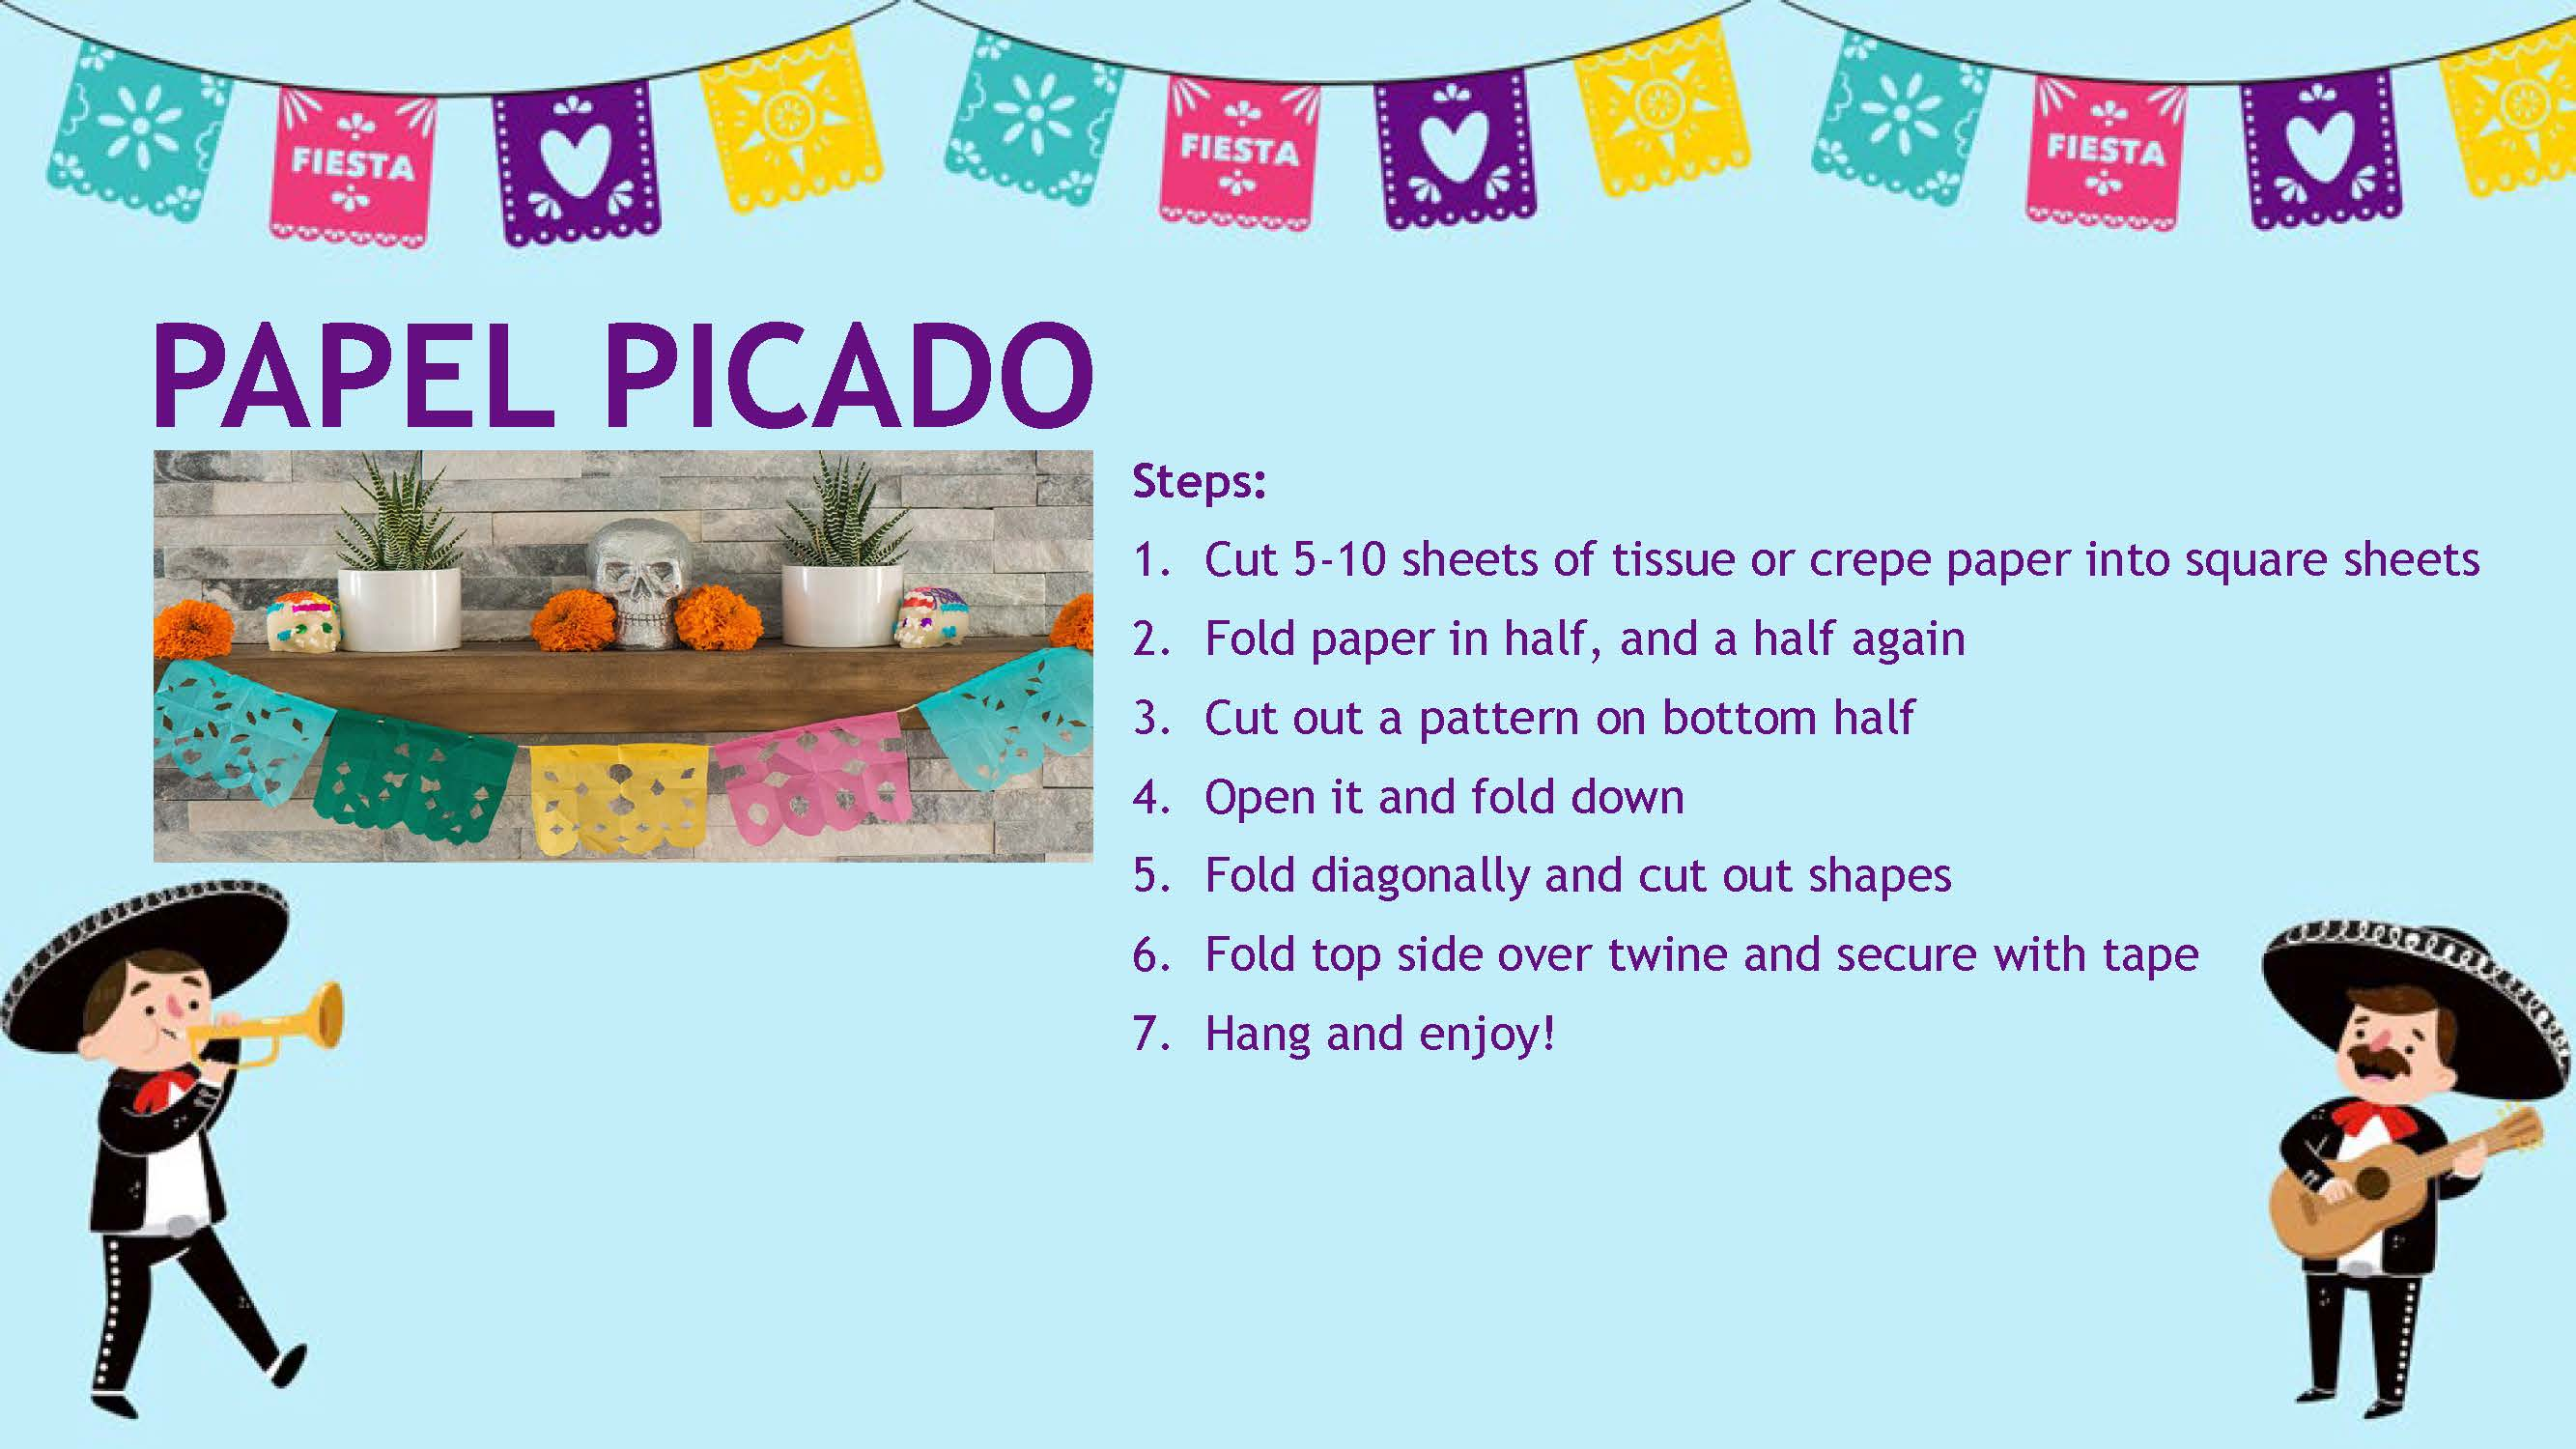 Cinco de Mayo Fun Crafts - Papel Picado